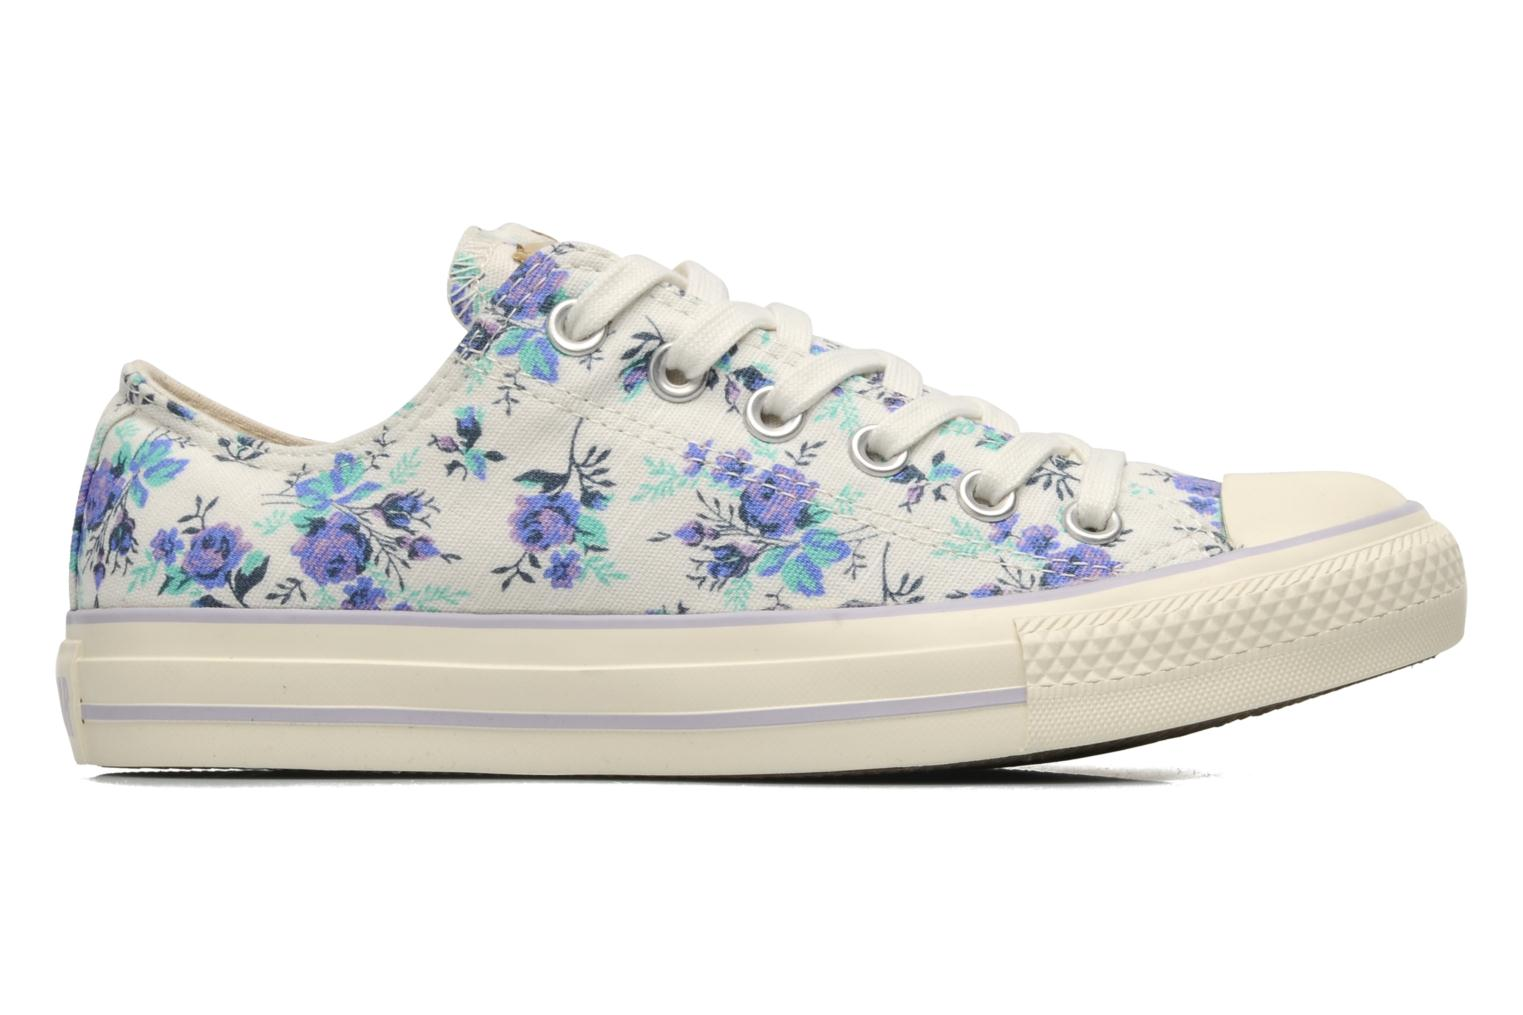 Chuck Taylor All Star Floral Print Ox W by Converse (Multicolor)   Sarenza UK   Your Trainers Chuck Taylor All Star Floral Print Ox W Converse delivered for Free